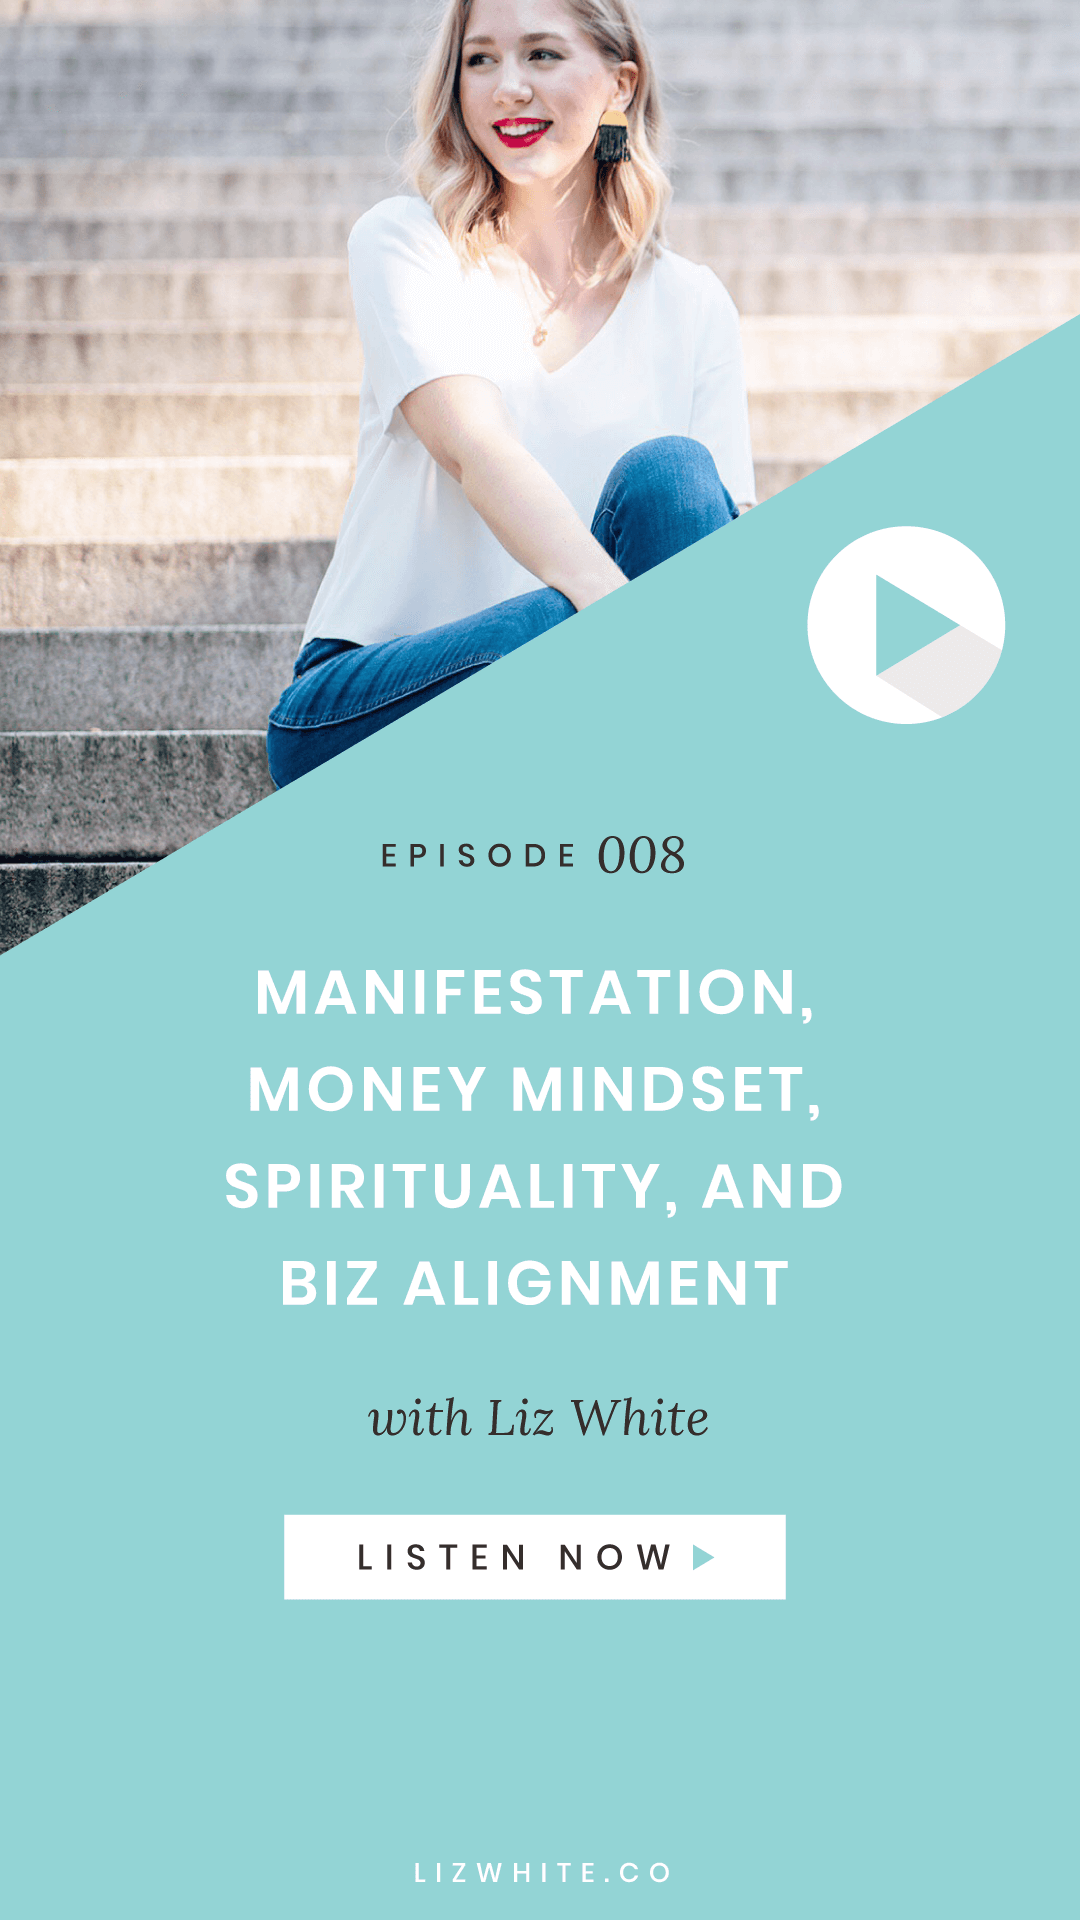 Manifestation, money mindset, connecting with your spirituality, and alignment. It was a total off the cuff chat that even led into the story about my Joshua Tree spirit animal which I haven't publicly talked about before.